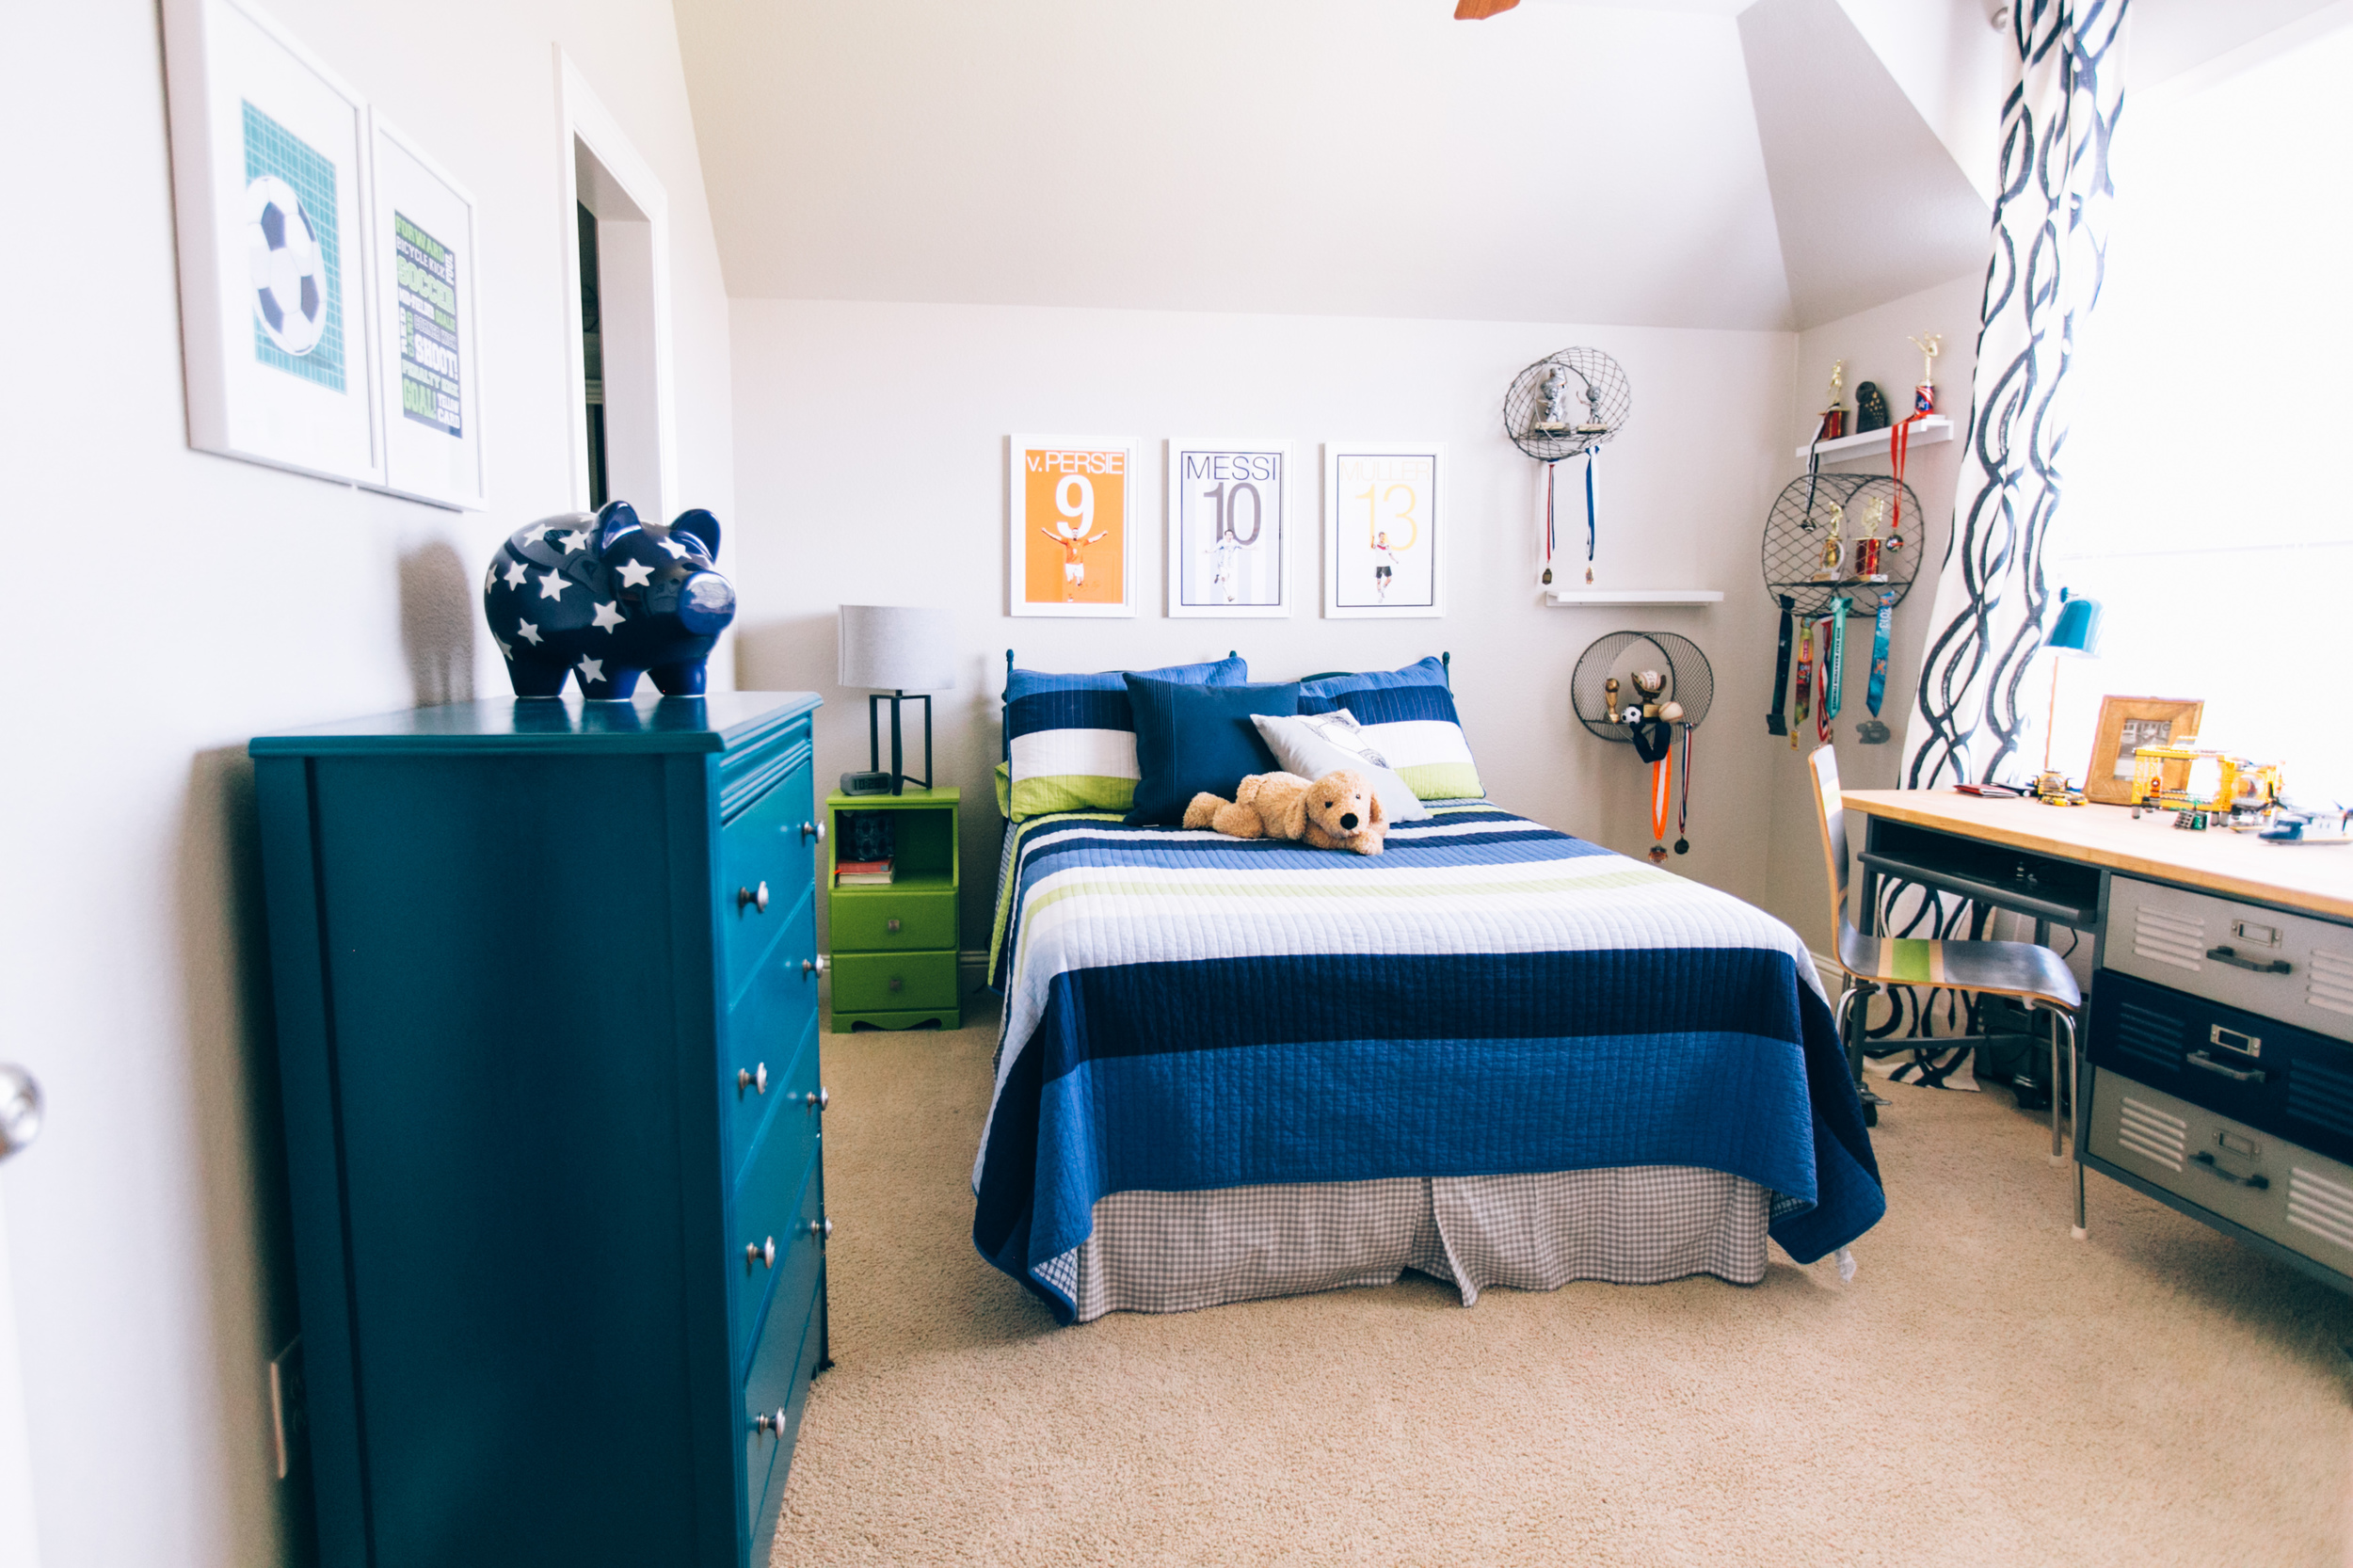 Interior-design-kids-room-Keller-Texas-208.jpg